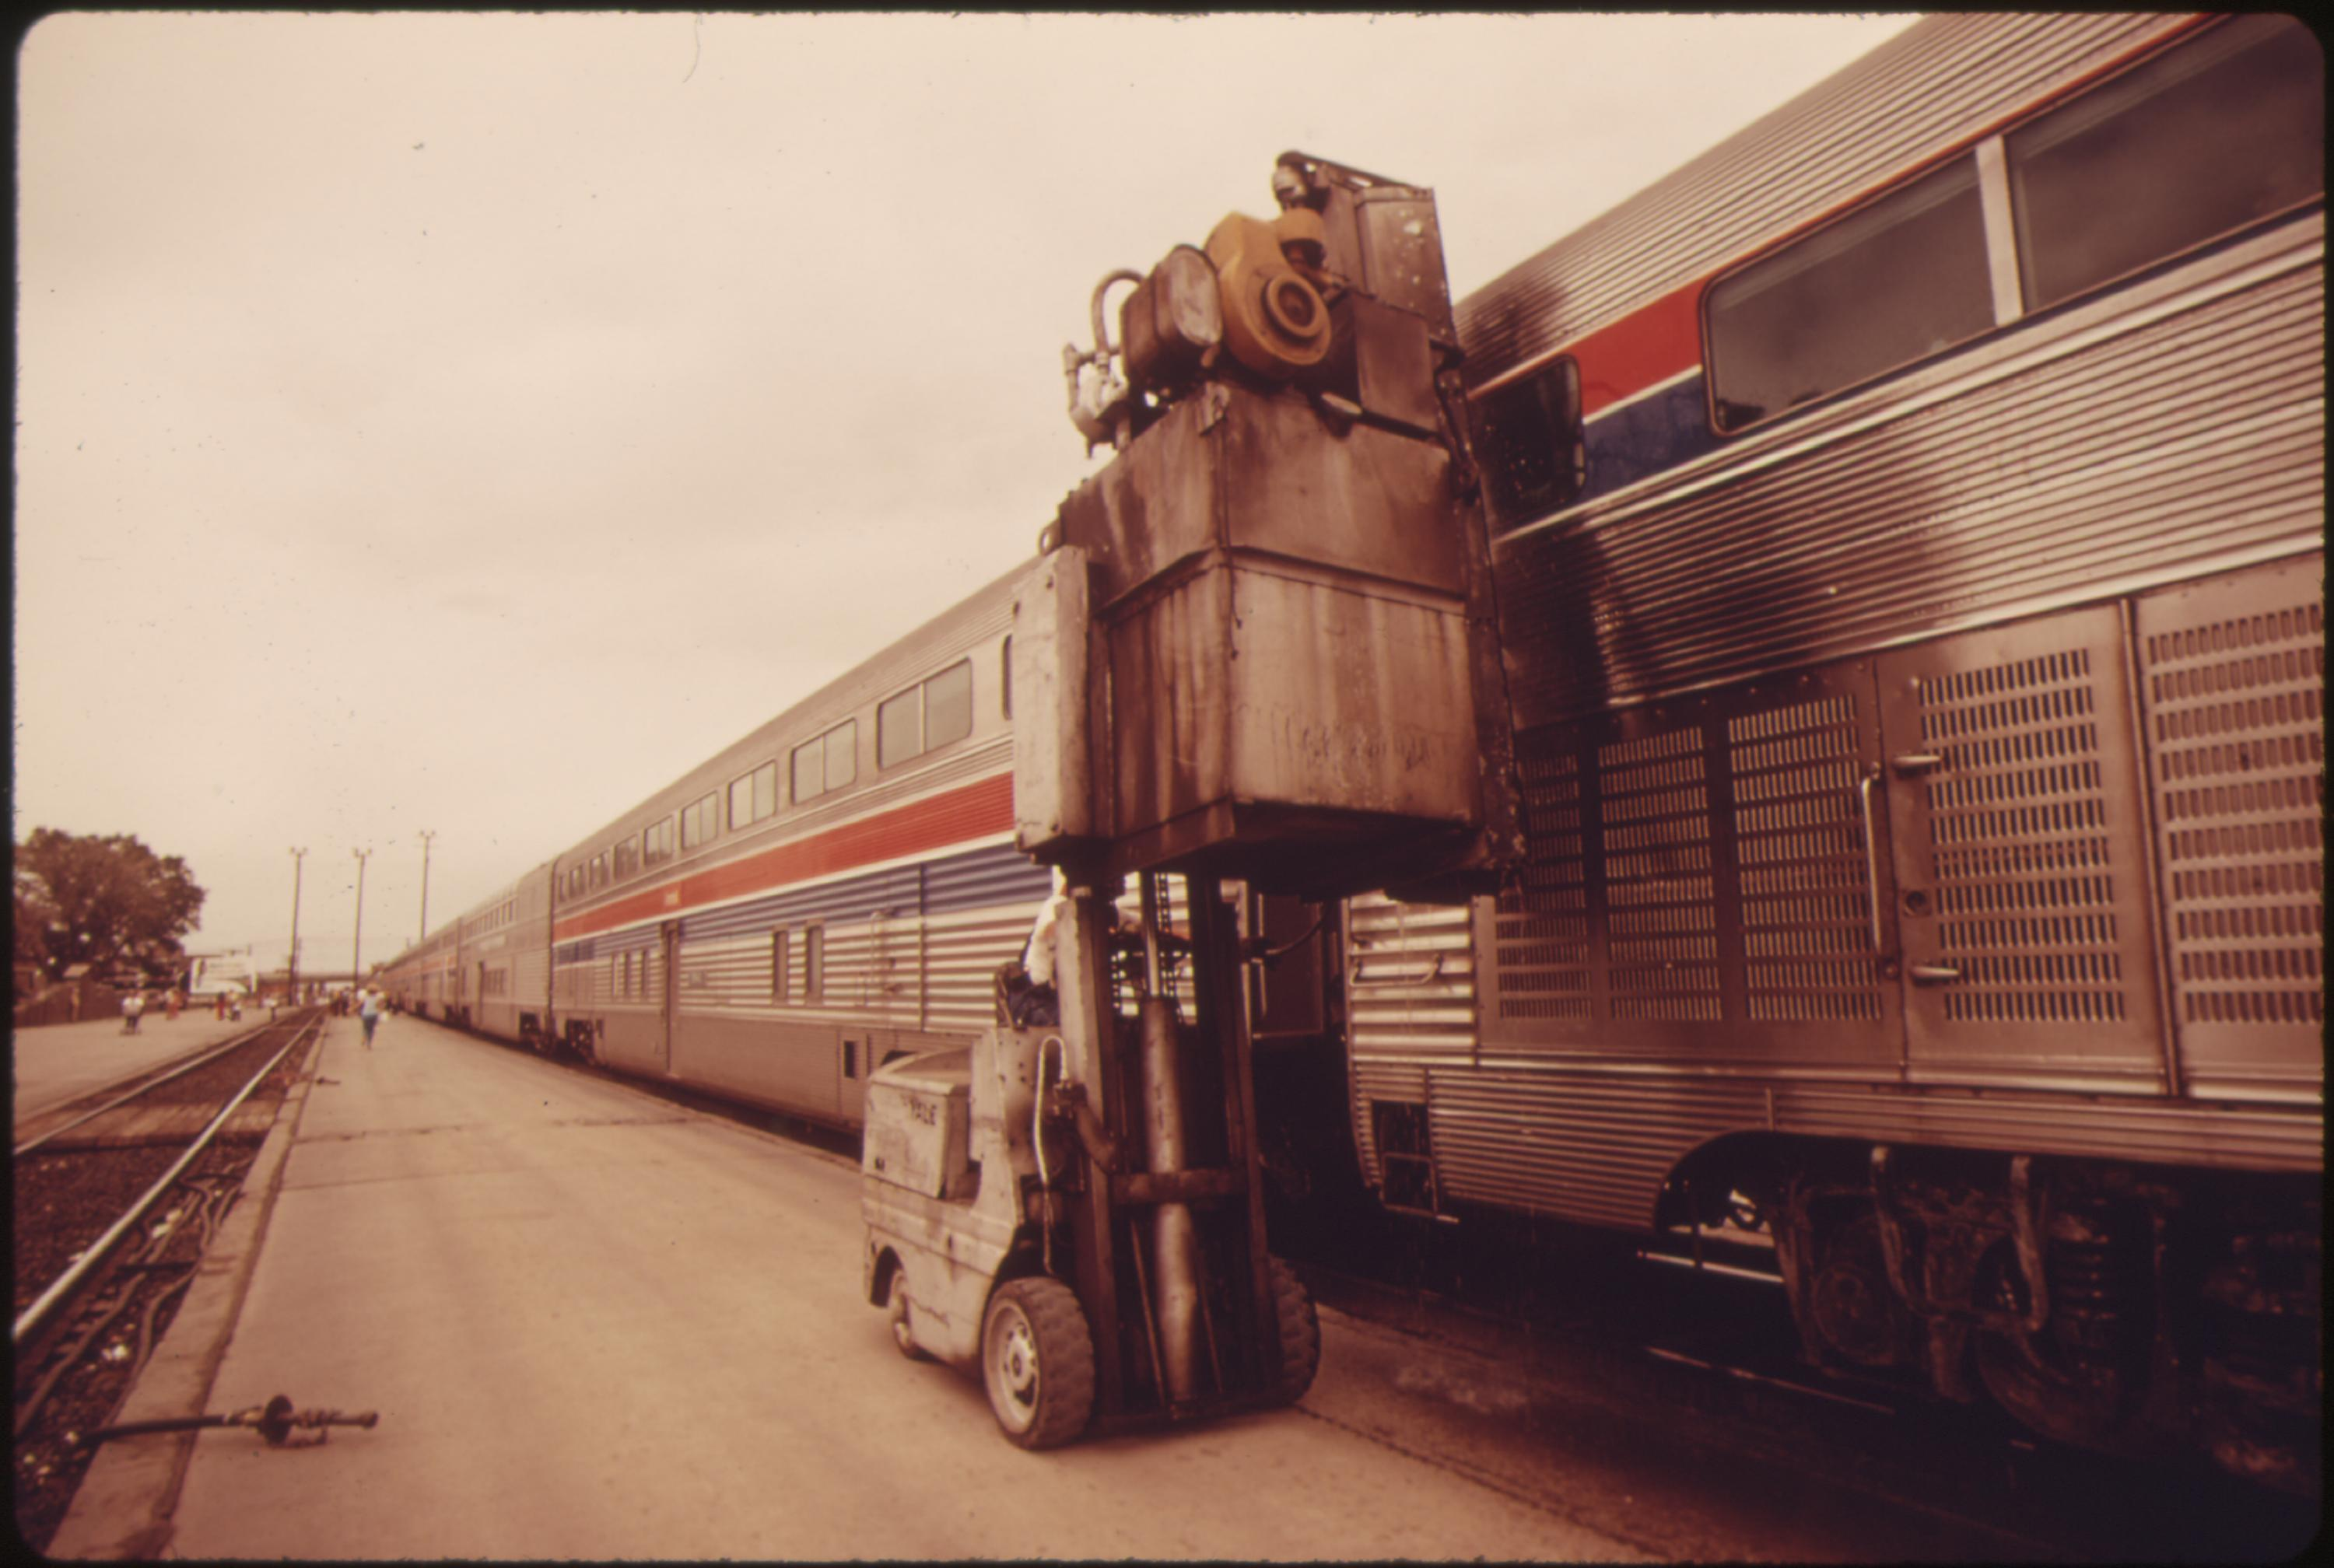 Window washing equipment is used on Amtrak's Southwest Limited during a stop at Albuquerque, New Mexico, June 1974